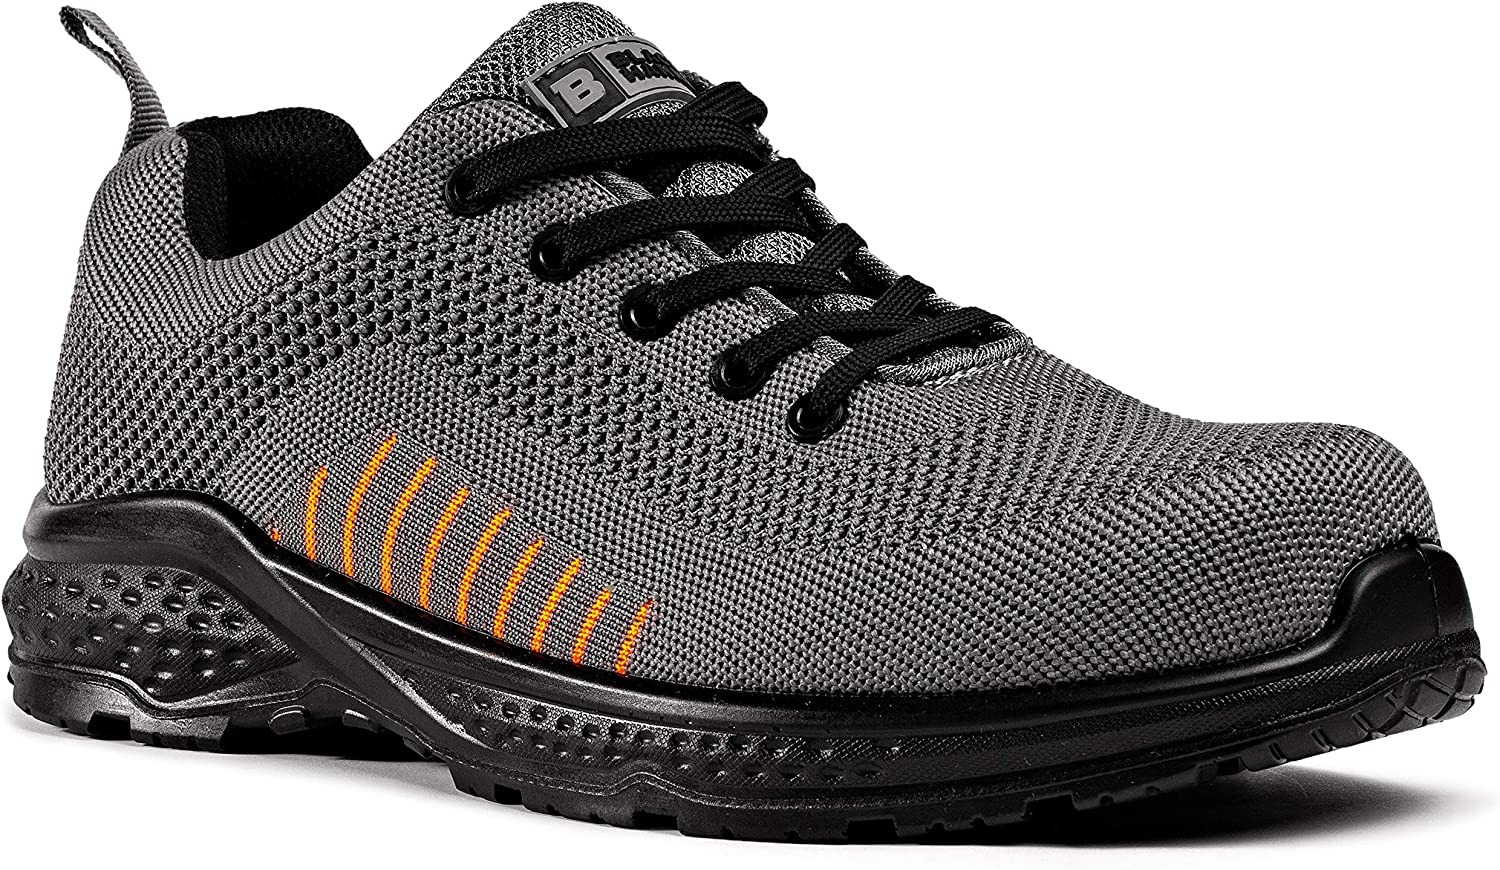 Black Outlet SALE Hammer Mens Safety Sneakers flynit Free Non SRC Metal At the price of surprise S1P